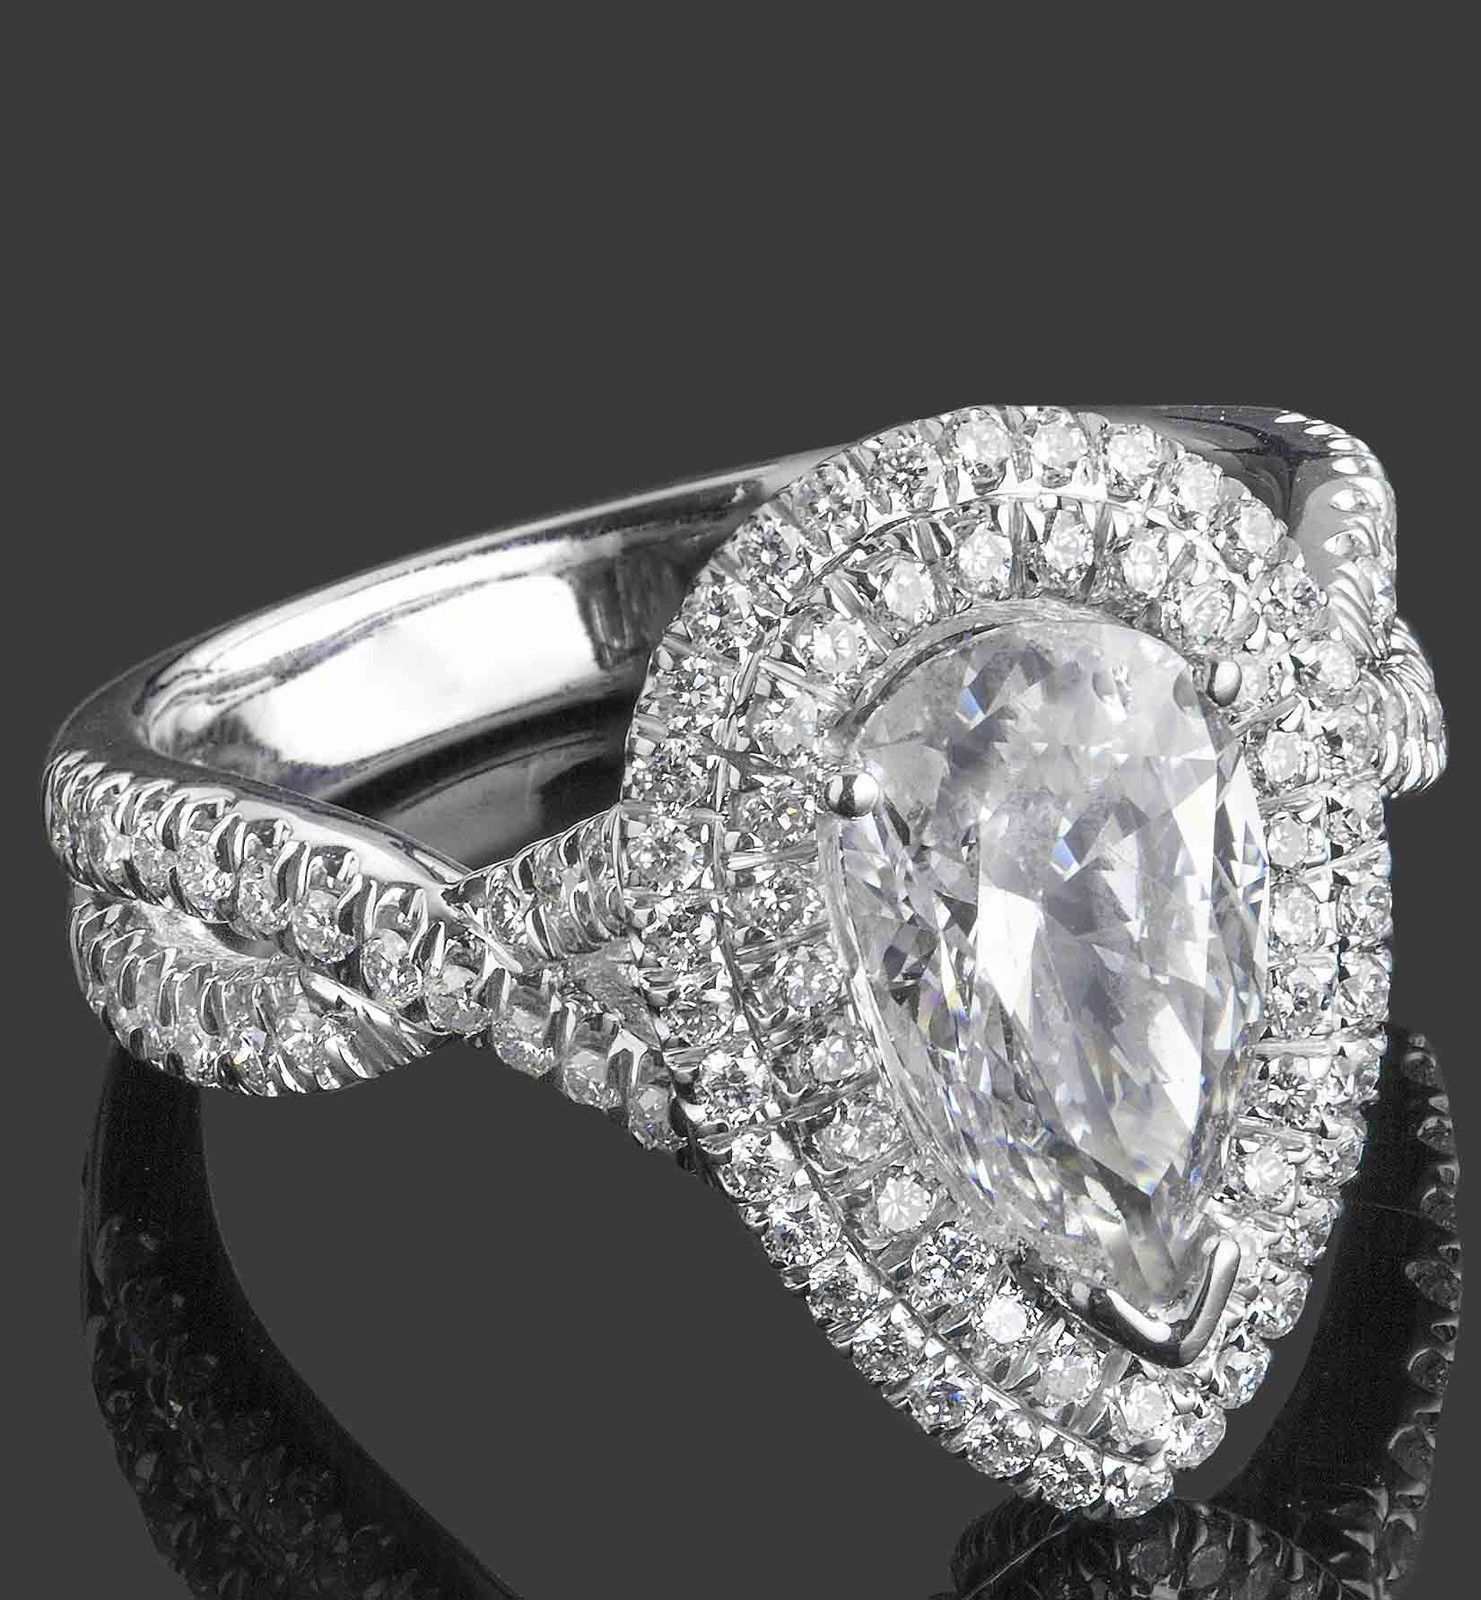 Pear Shaped Halo Engagement Ring: 2.46ct Pear Shaped Diamond Engagement Double Halo Ring 18k